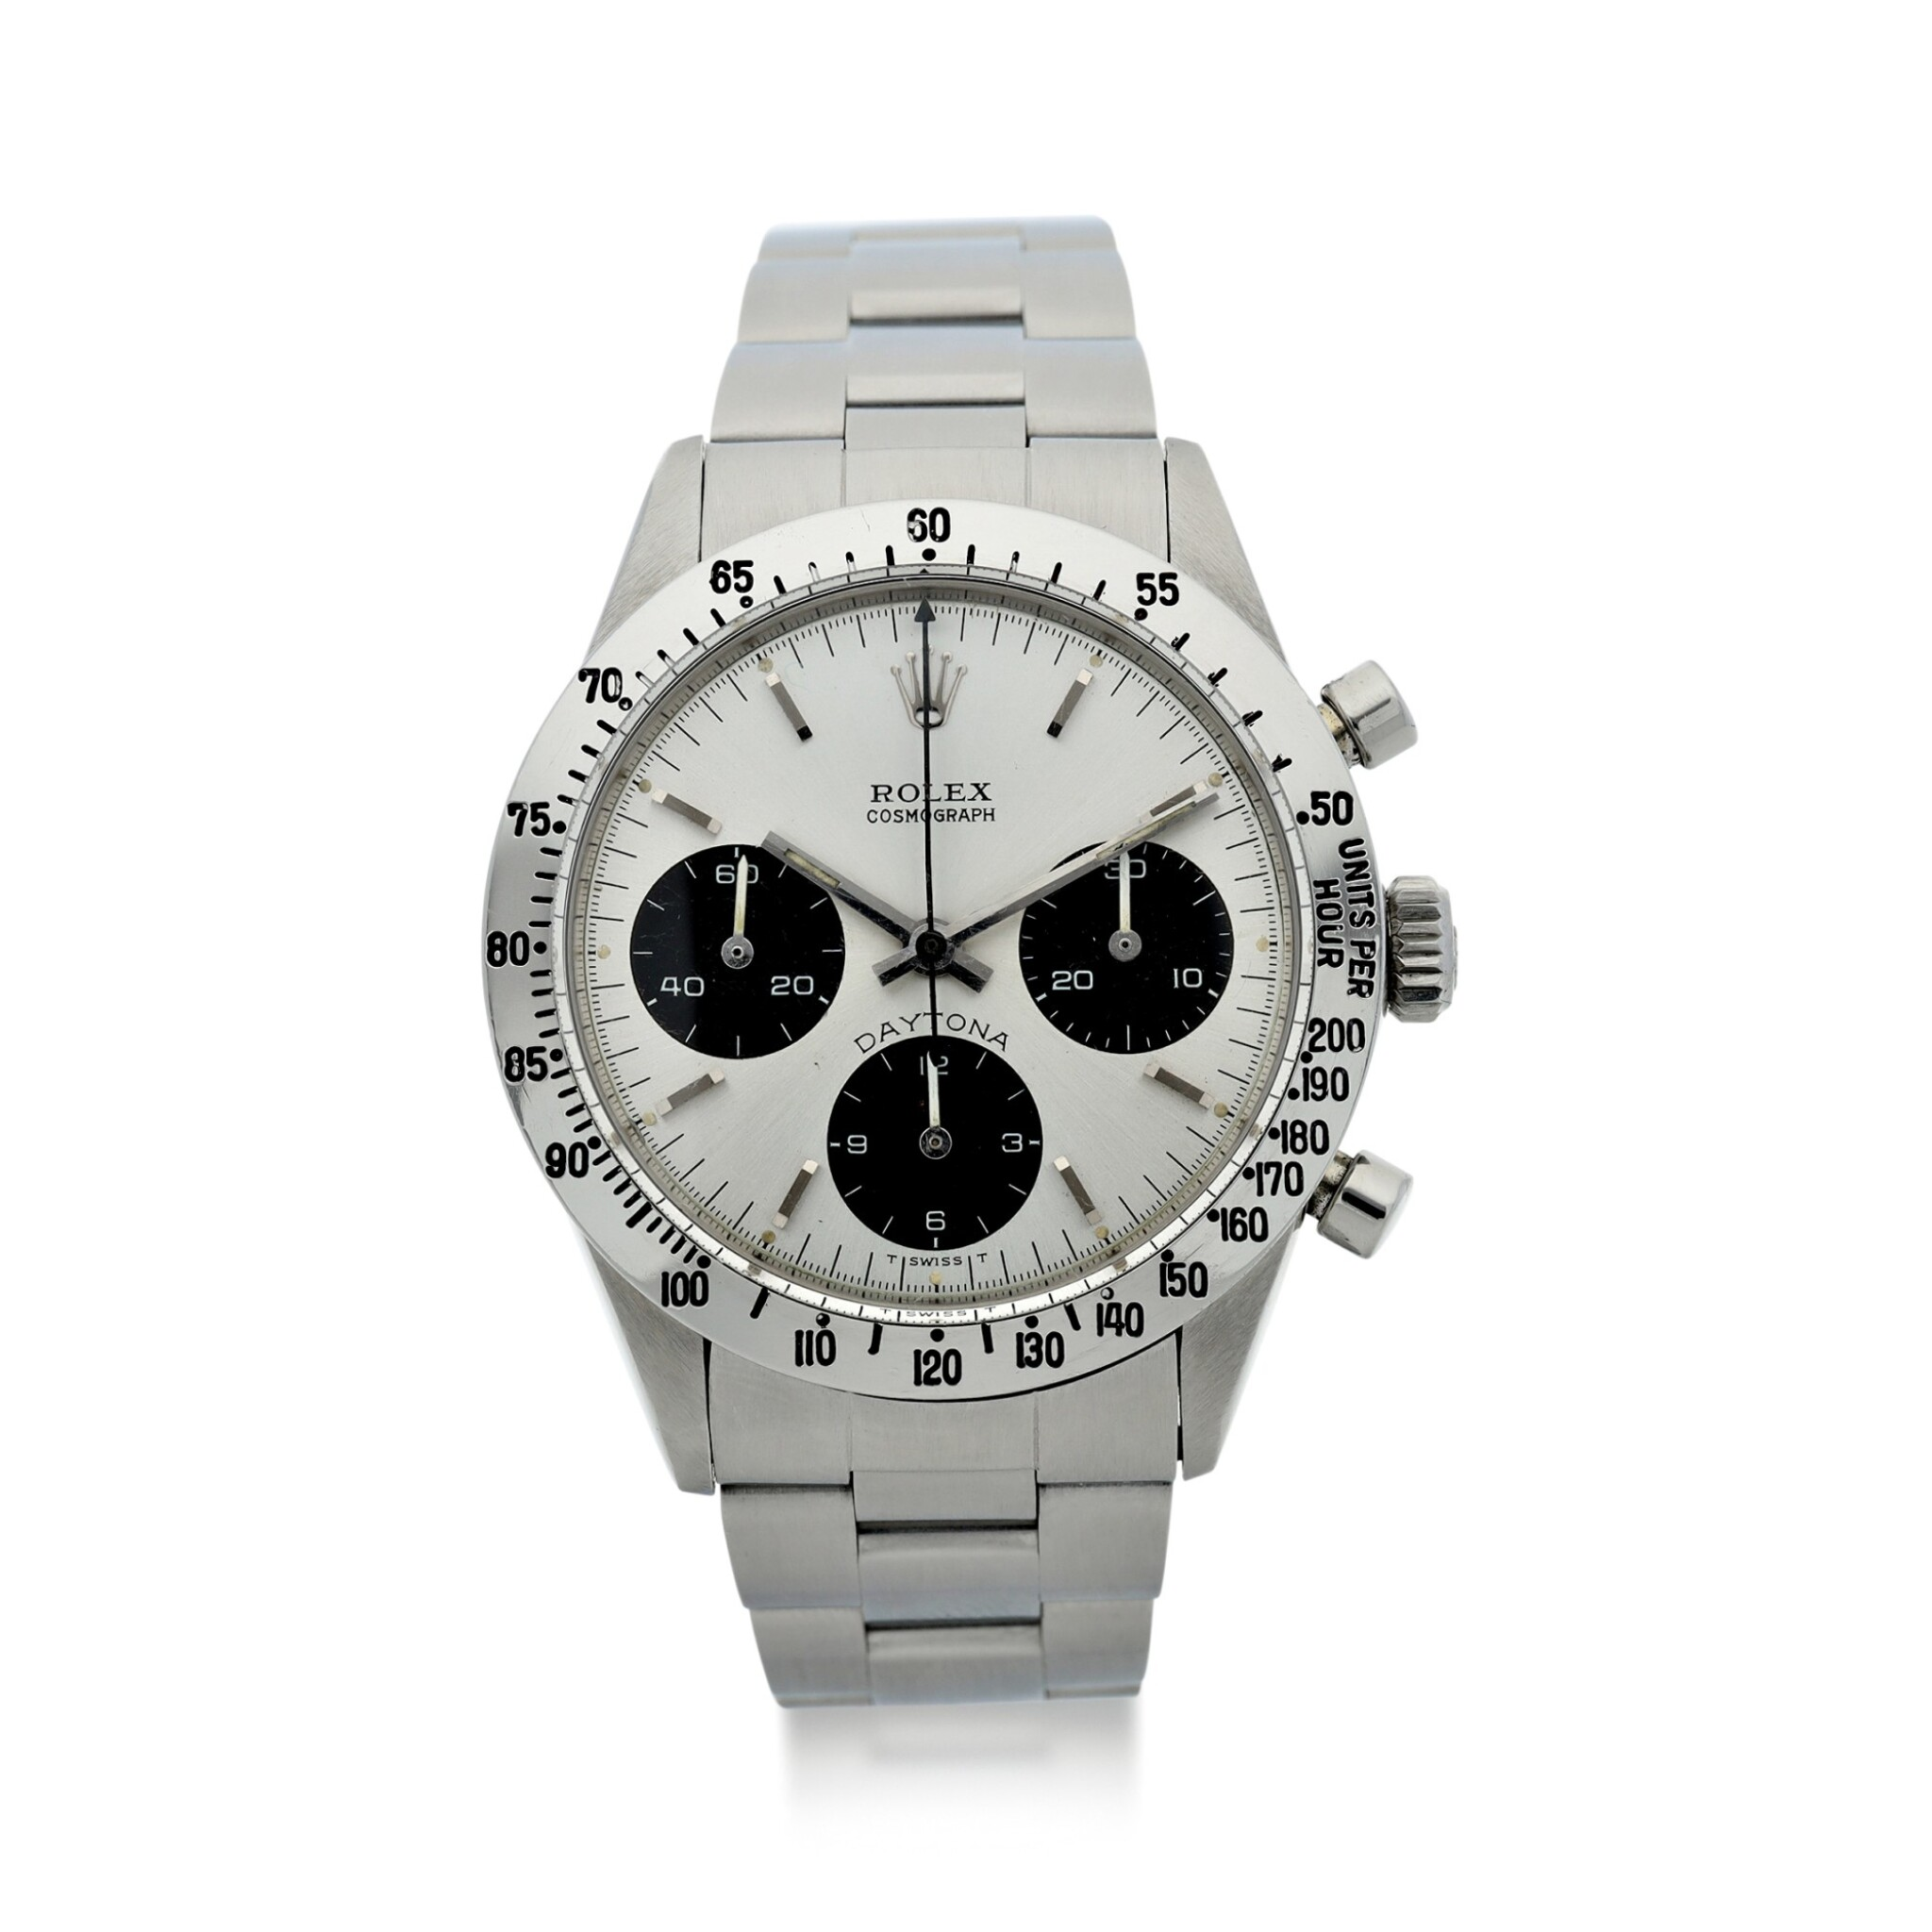 View full screen - View 1 of Lot 5. ROLEX | REFERENCE 6262 DAYTONA  A STAINLESS STEEL CHRONOGRAPH WRISTWATCH WITH BRACELET, CIRCA 1971.